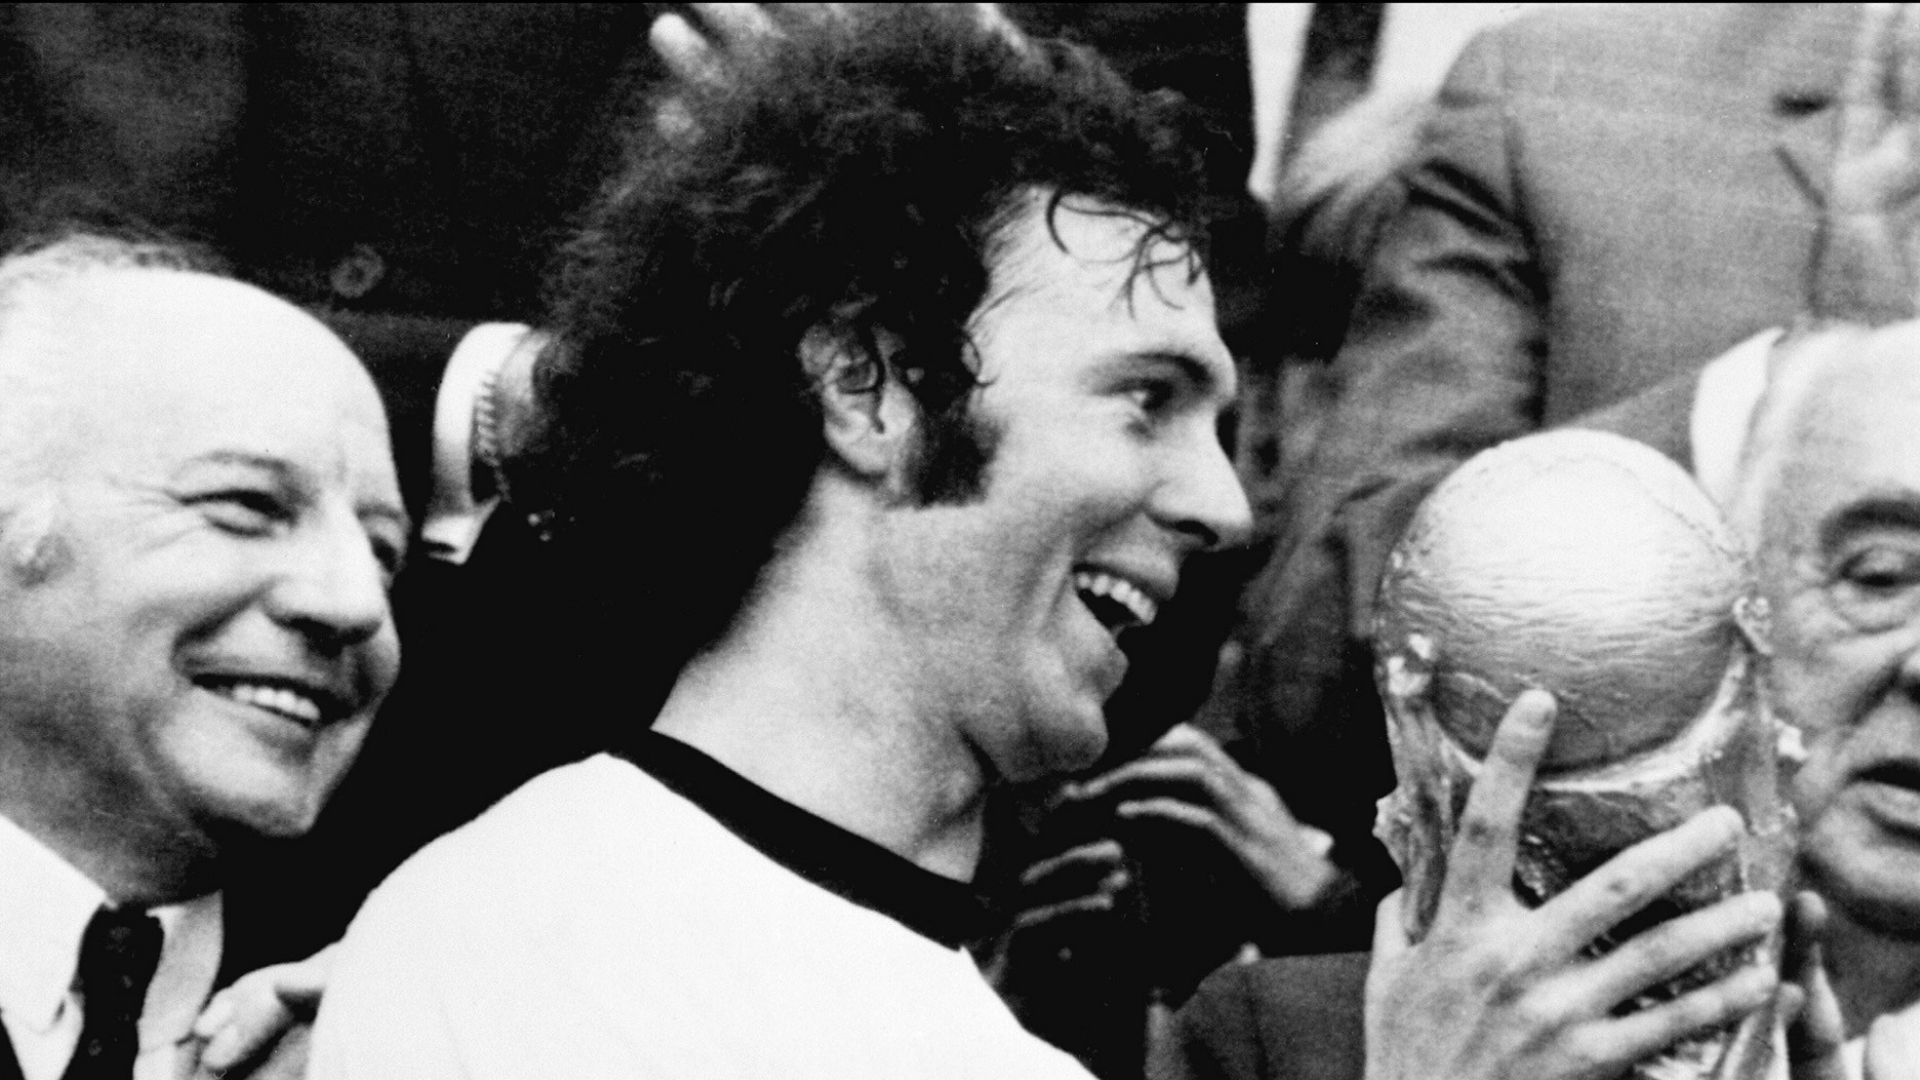 Franz Beckenbauer West Germany